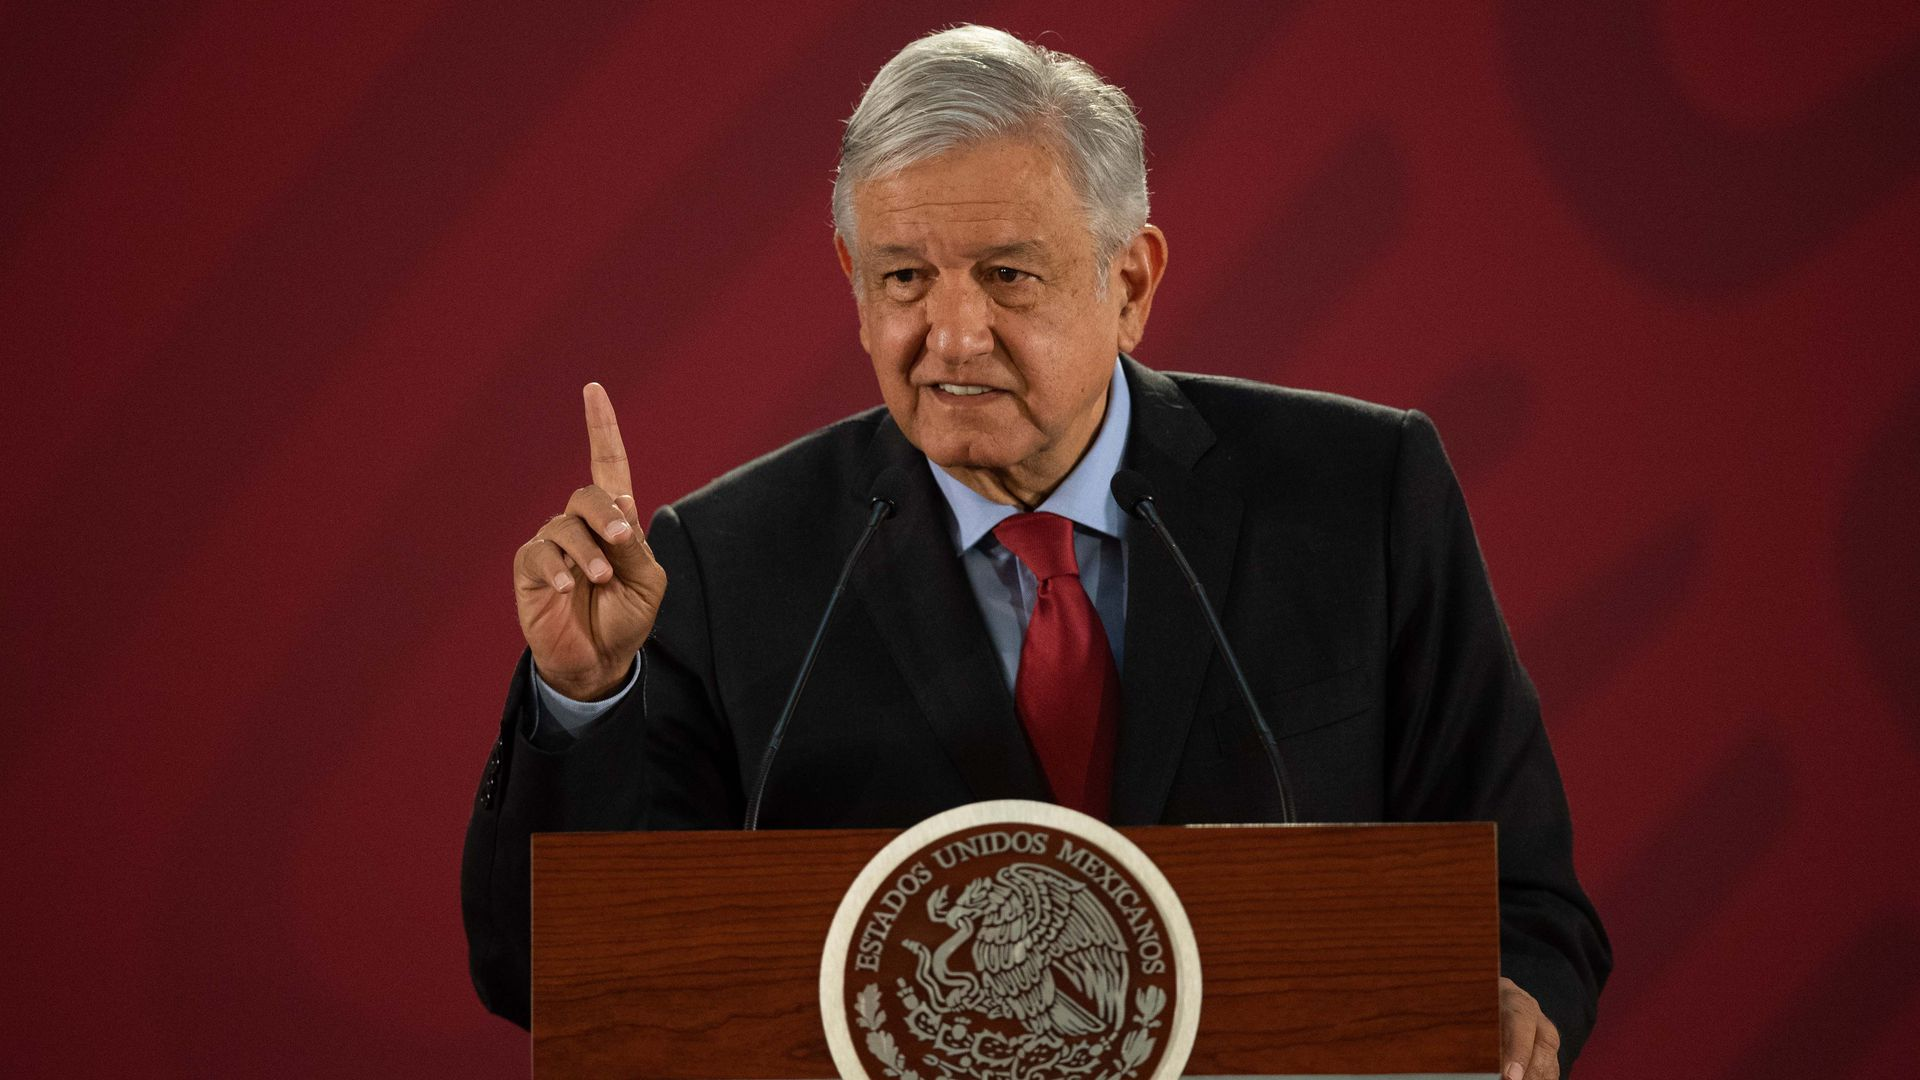 In this image, the Mexican president stands and speaks behind a podium.